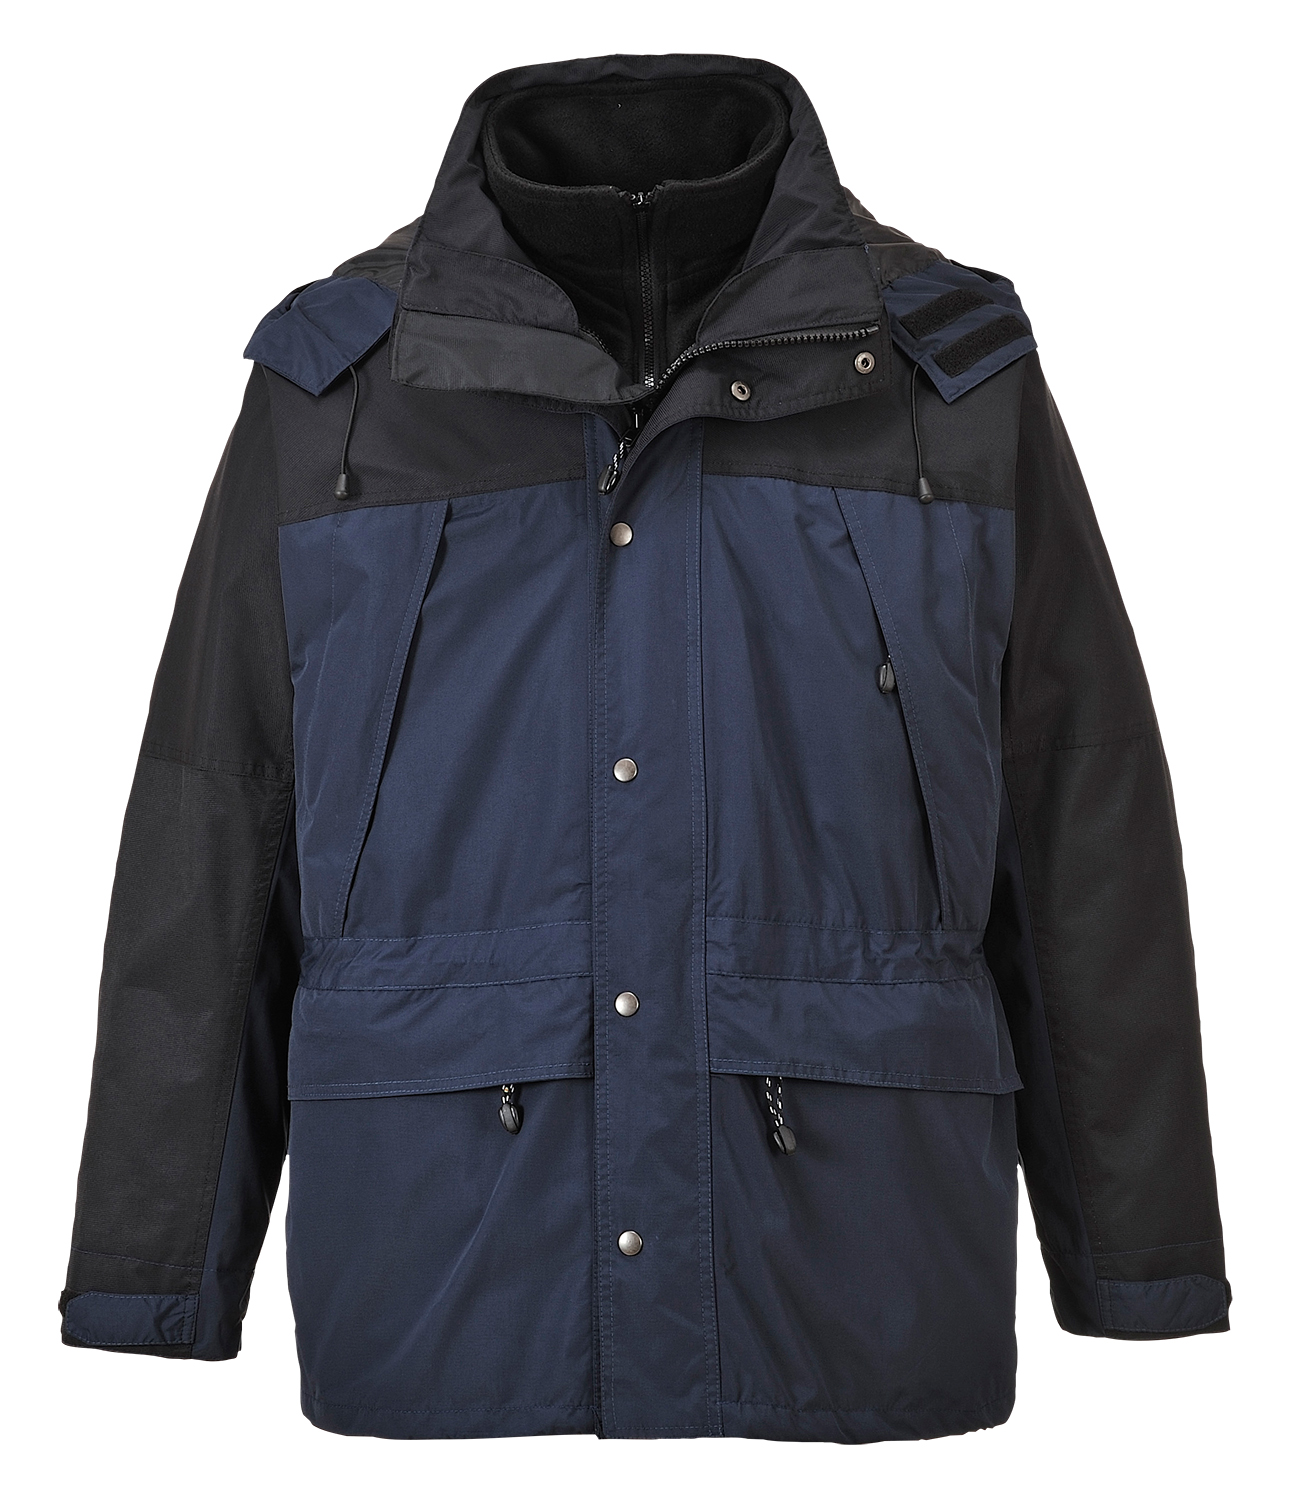 S532 Orkney 3 in 1 breathable jacket